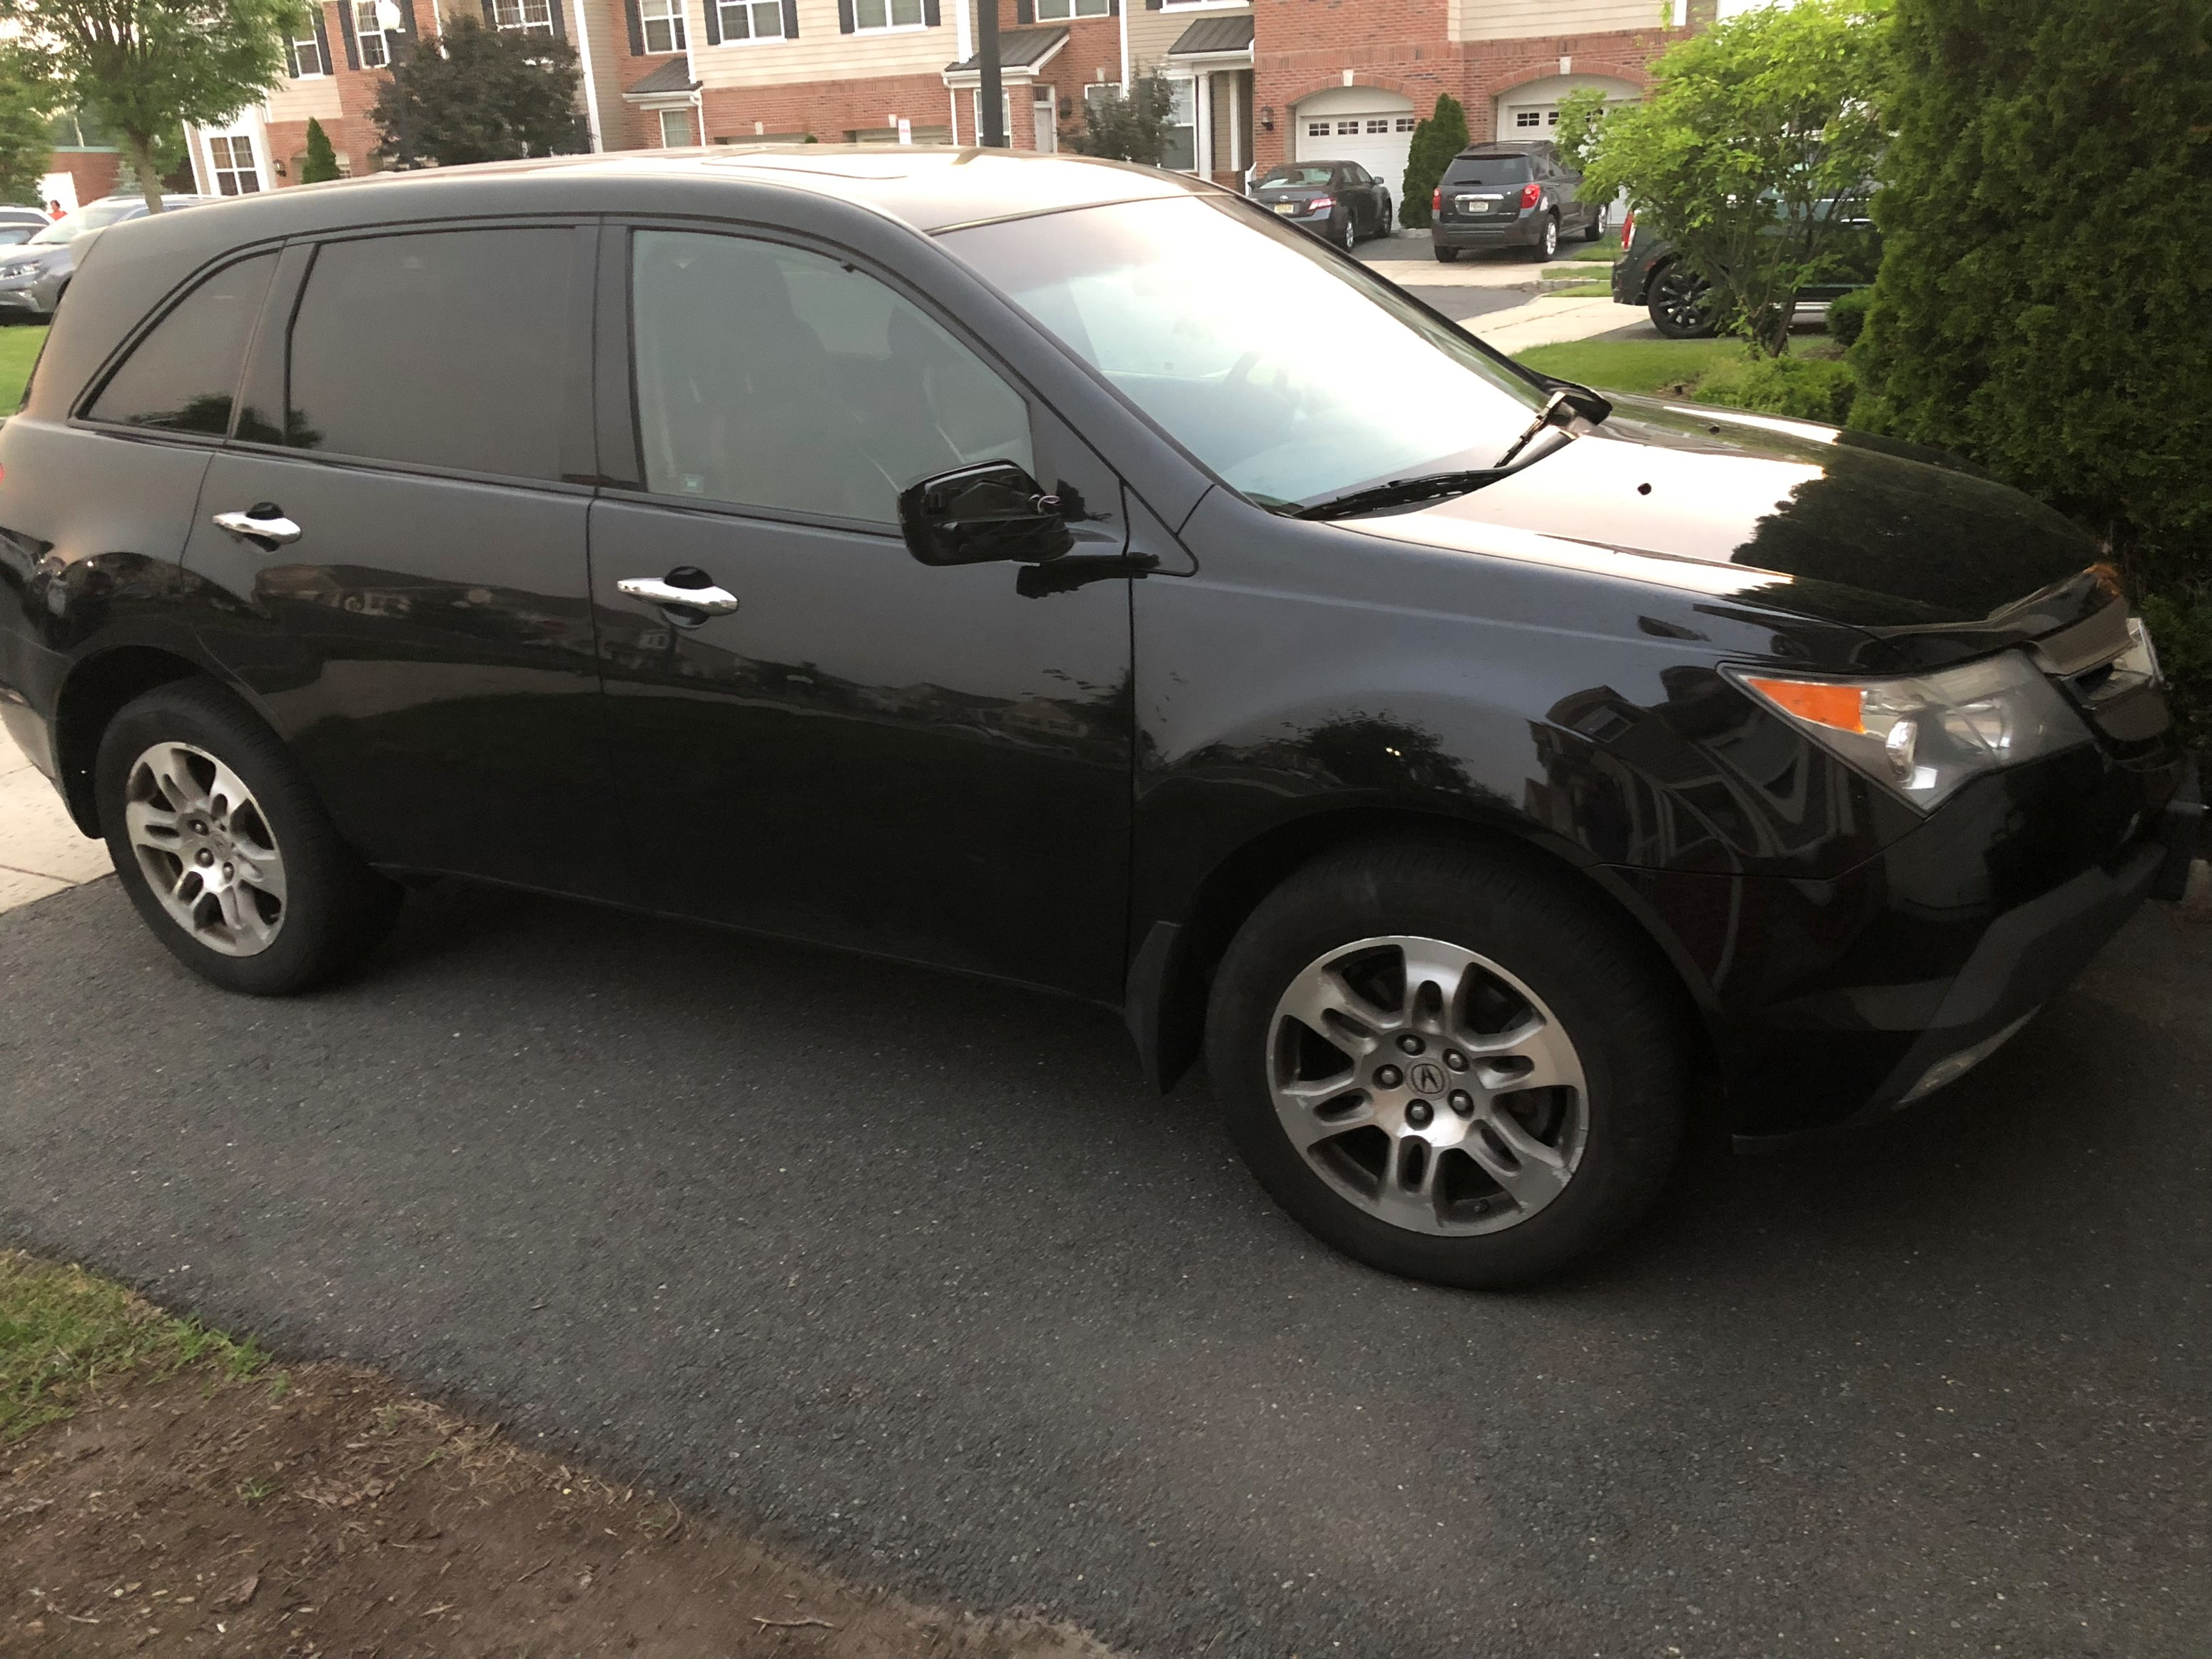 owner free cars mdx used single in accident usautomobile nj acura edison